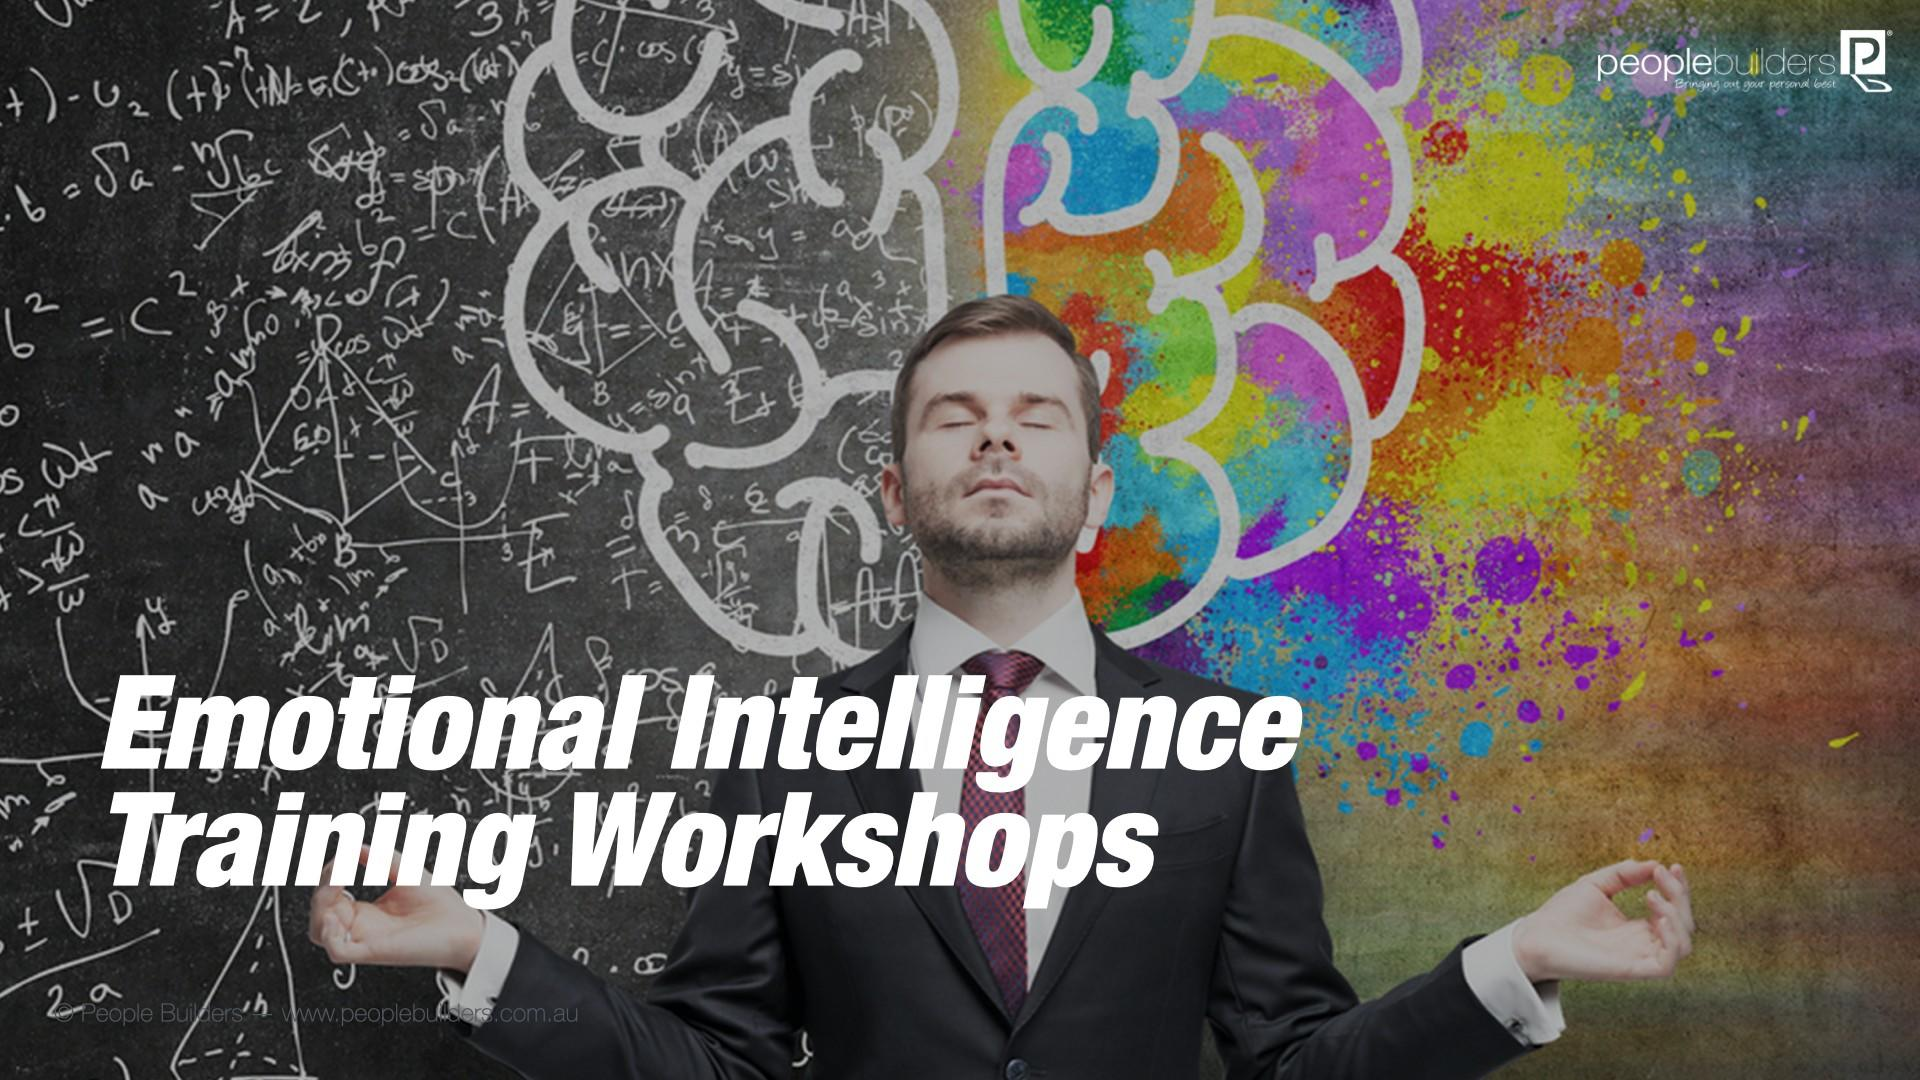 Emotional Intelligence Training Worskhop poster showing Man doing meditation pose with creative and logical brain as background.